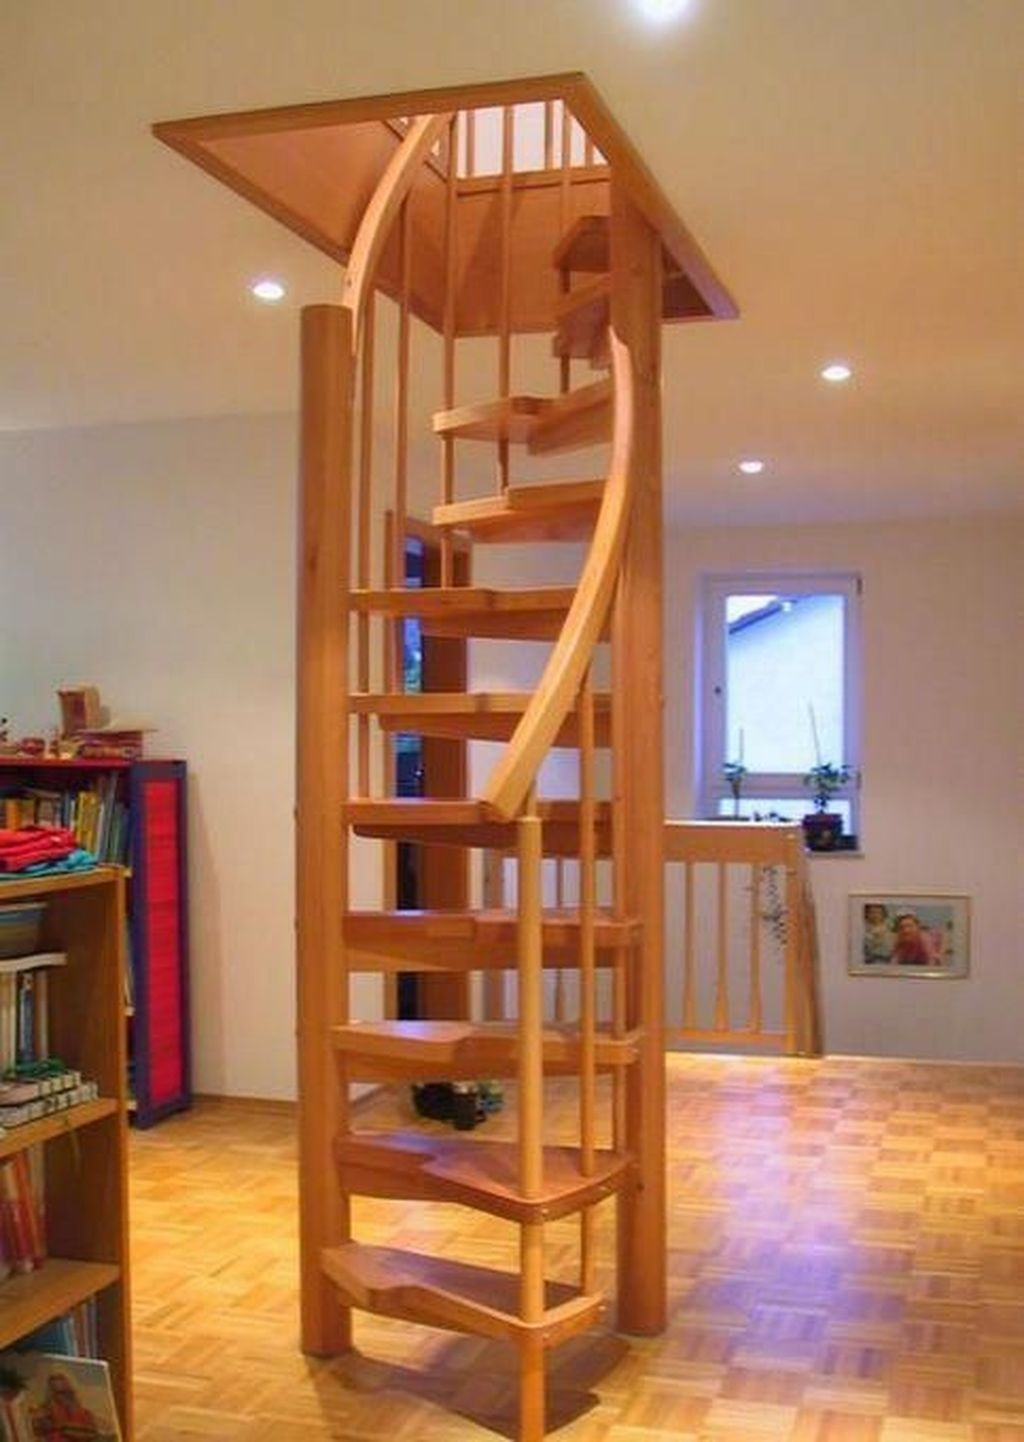 Incredible Stairs Design Ideas For The Attic To Try09